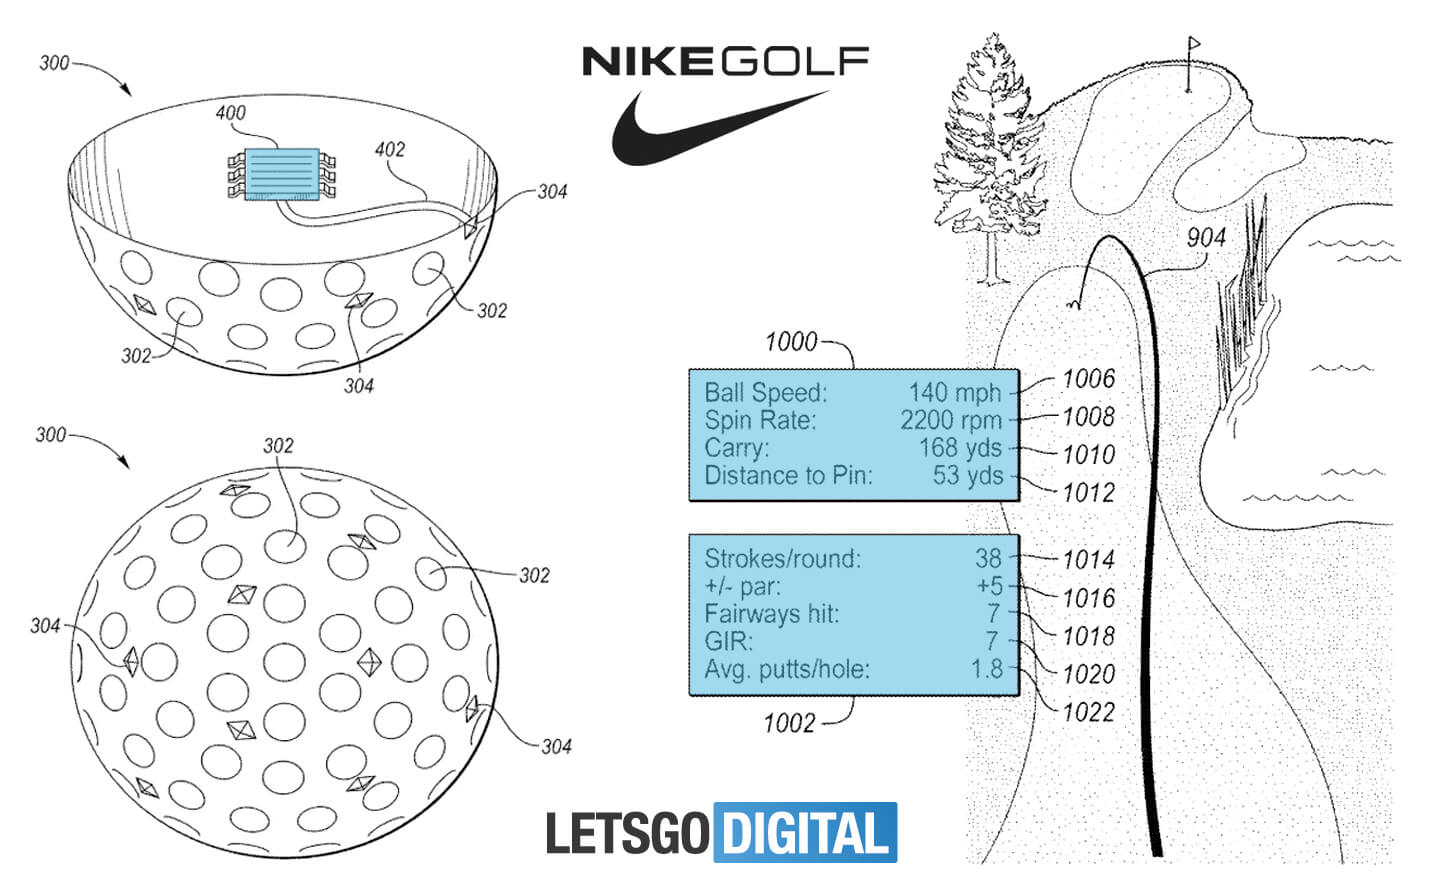 9b694444a4 Nike heads up display with tracking system for golf ball